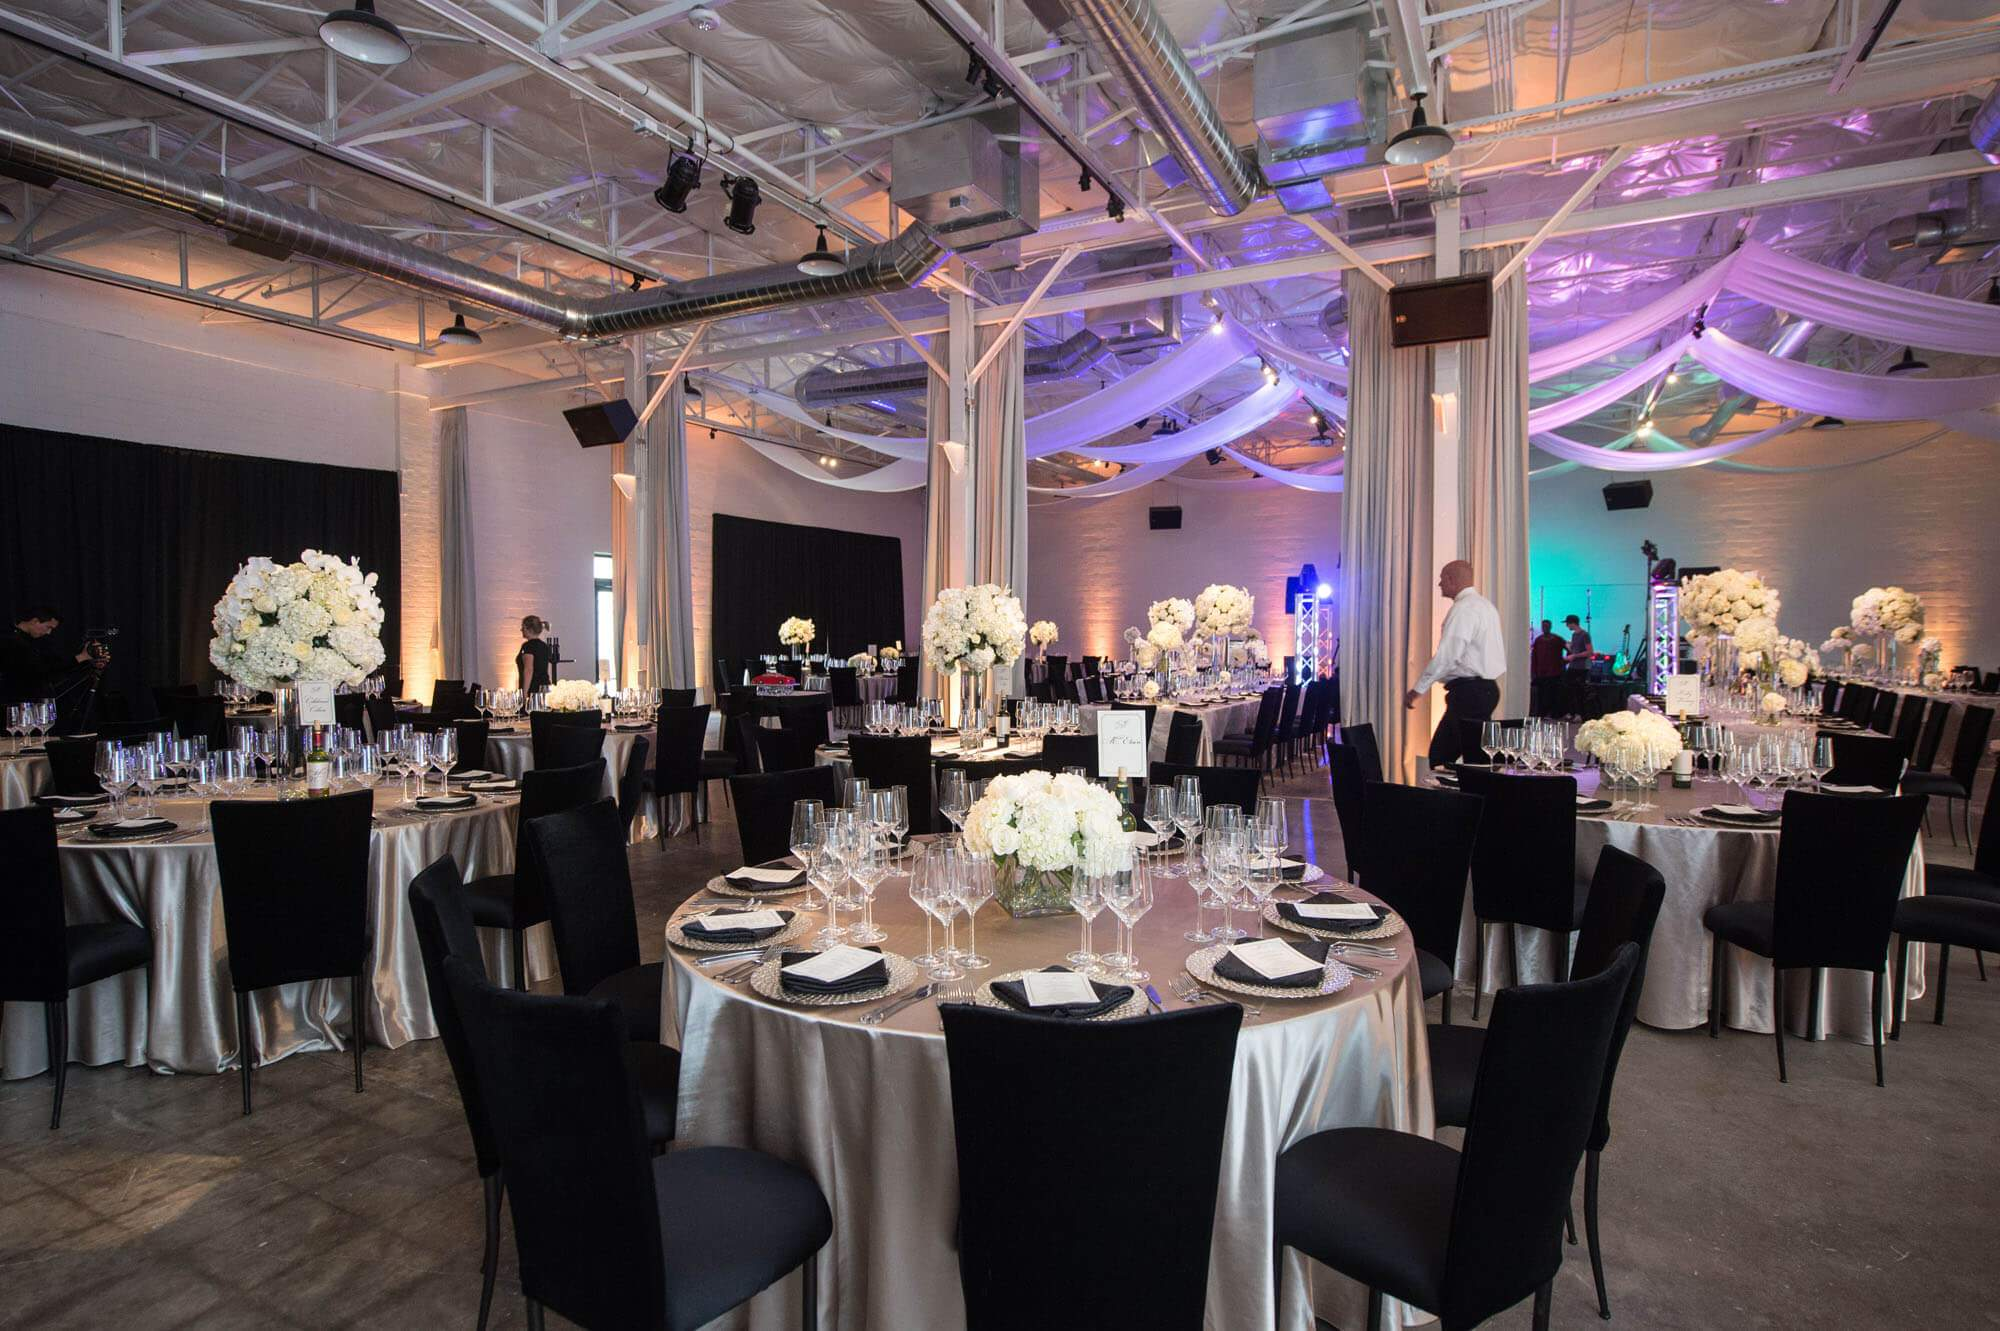 rent tablecloths and chair covers near me chairs with storage rack wedding event linen rentals  donnie brown